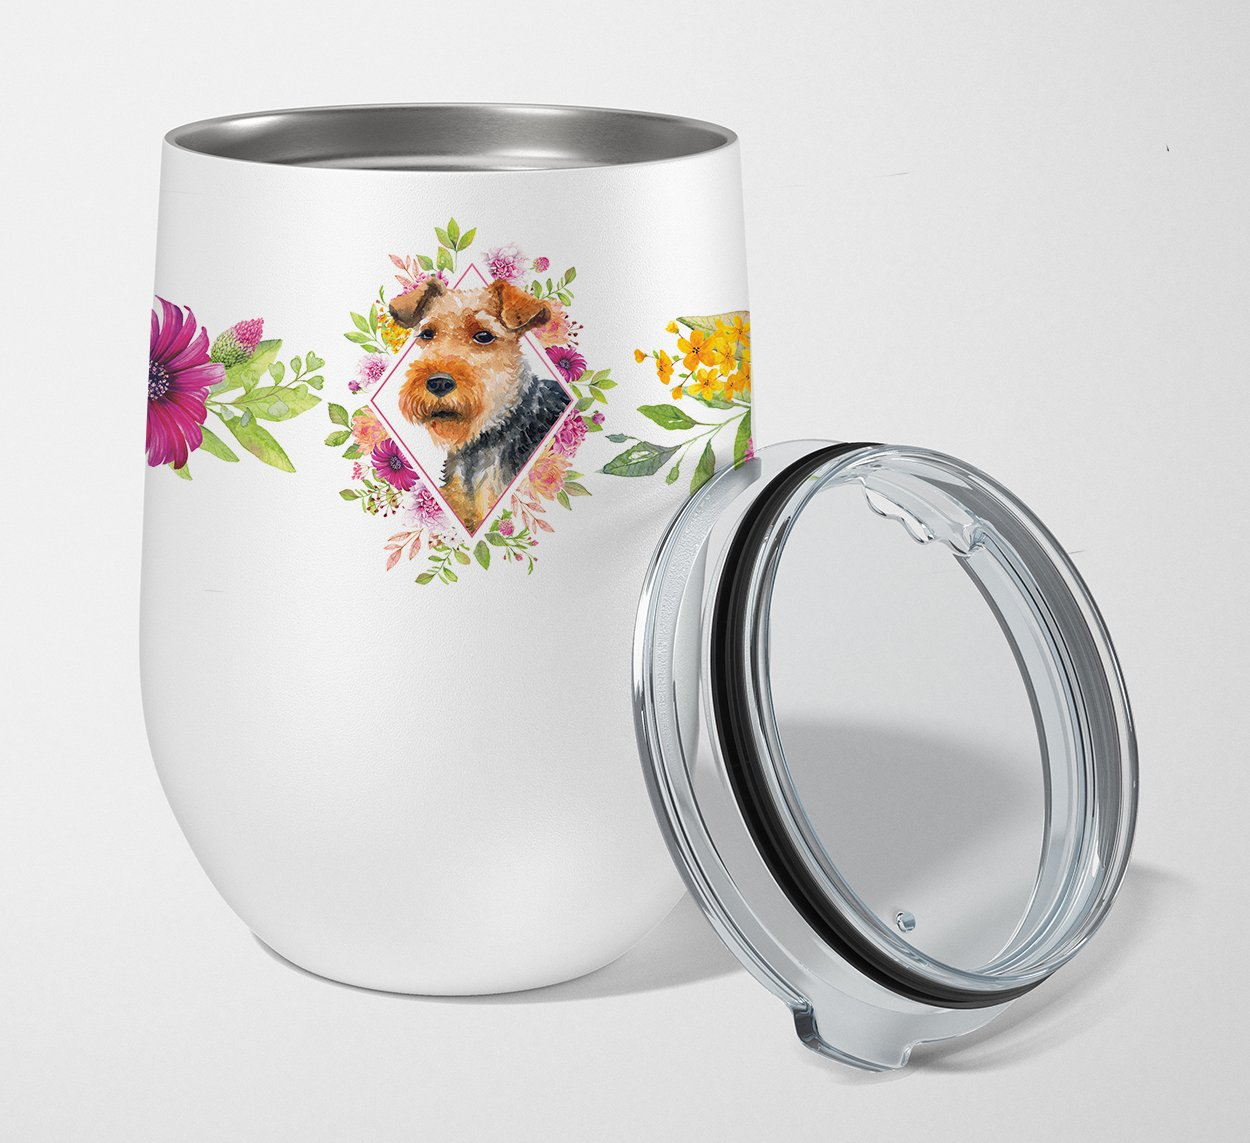 Welsh Terrier Pink Flowers Stainless Steel 12 oz Stemless Wine Glass CK4192TBL12 by Caroline's Treasures